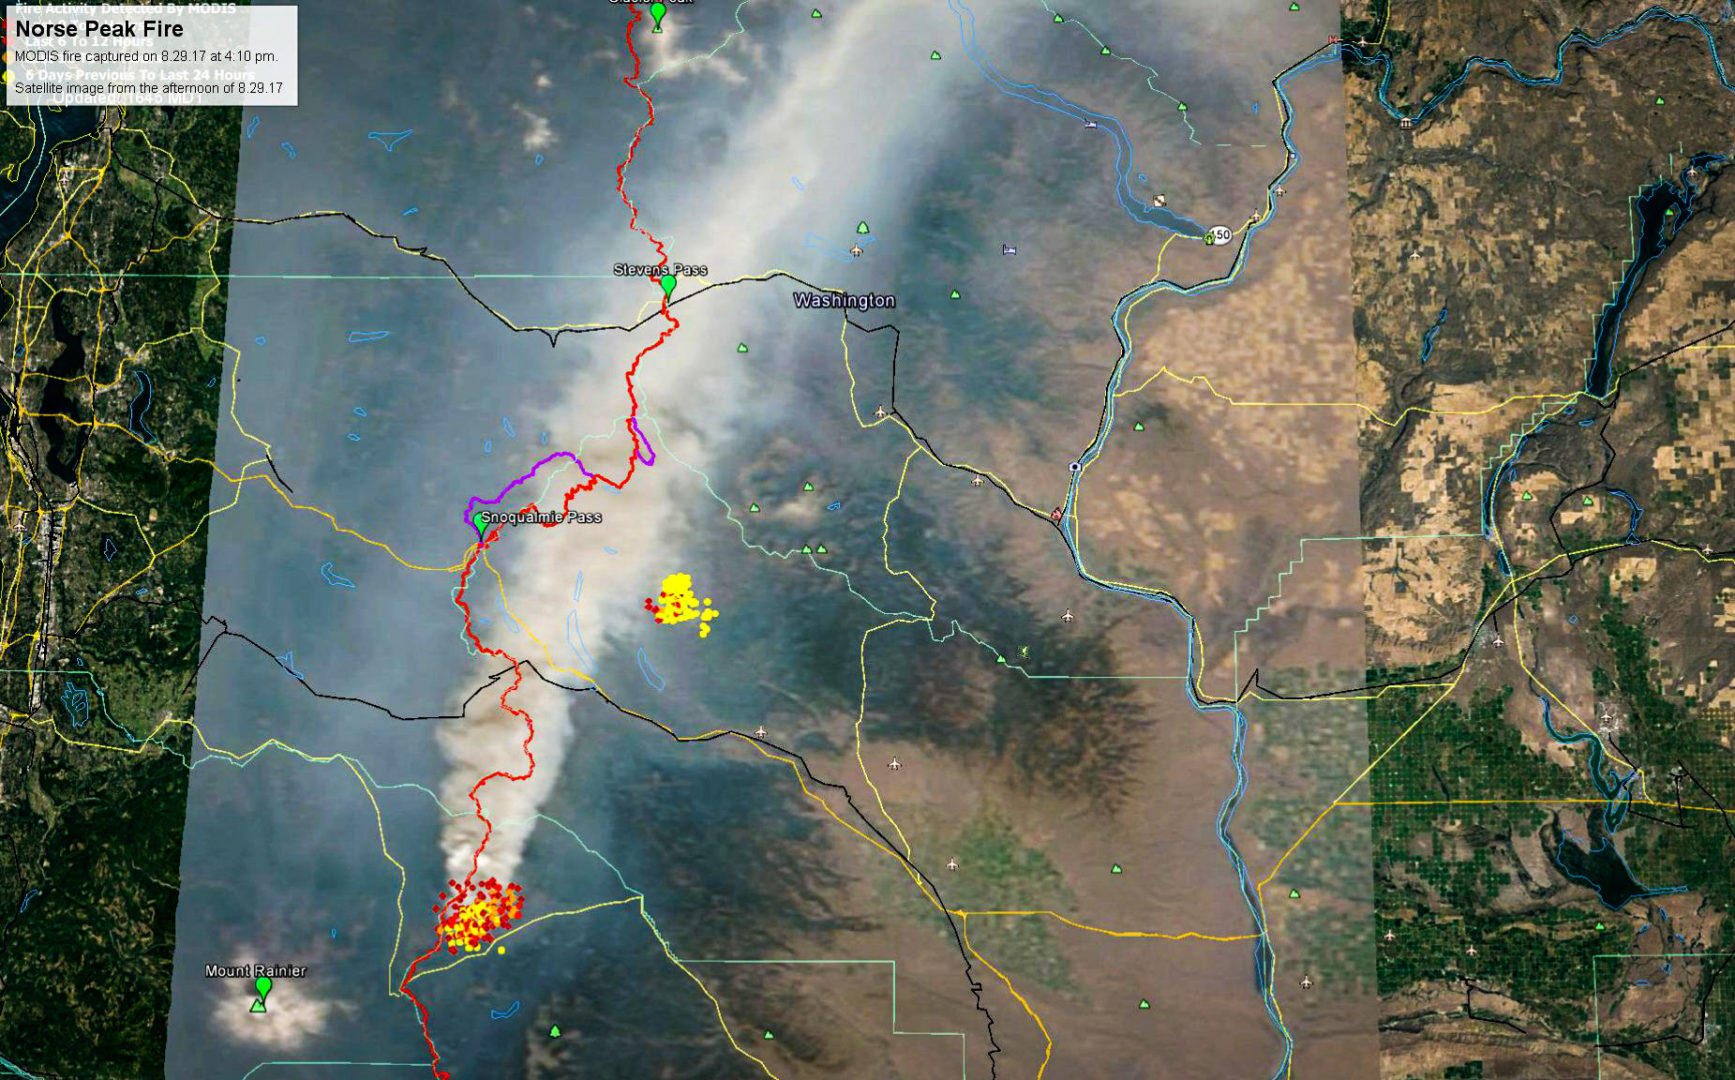 Just In Time for Another Fire Closure! - PCT 2017: A Hiking ... Satellite Map Of Pct on map of palm, map of pe, map of cdt, map of northern california and oregon, map of pen, map of pa, map of san, map of delaware, map of pcc, map of md, map of asia, map of ca, map of ai, map of ms, map of pcb, map of sun, map of msp, map of nec, map of pei, map of pch,